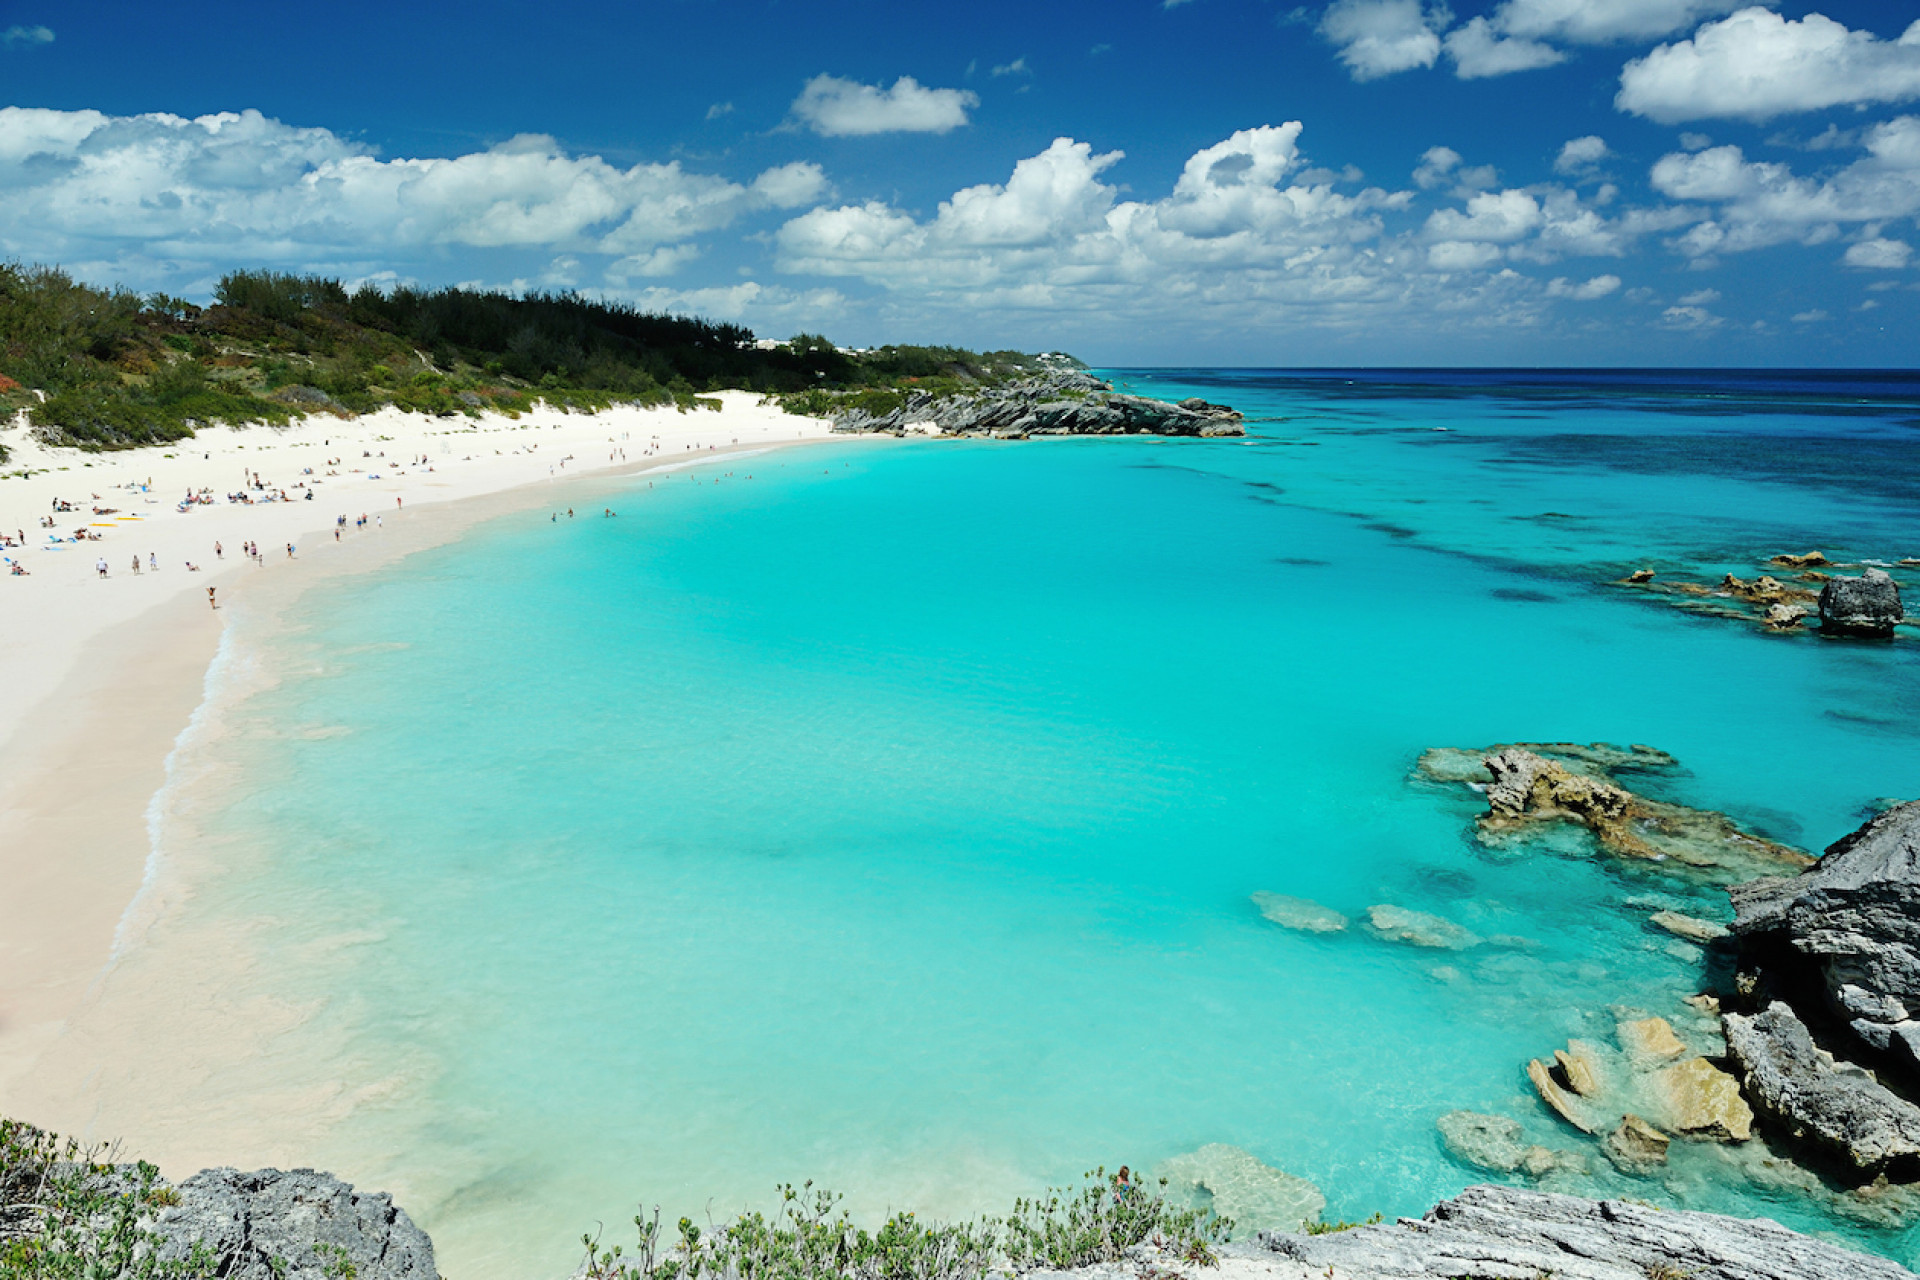 Charter Destination: Bermuda